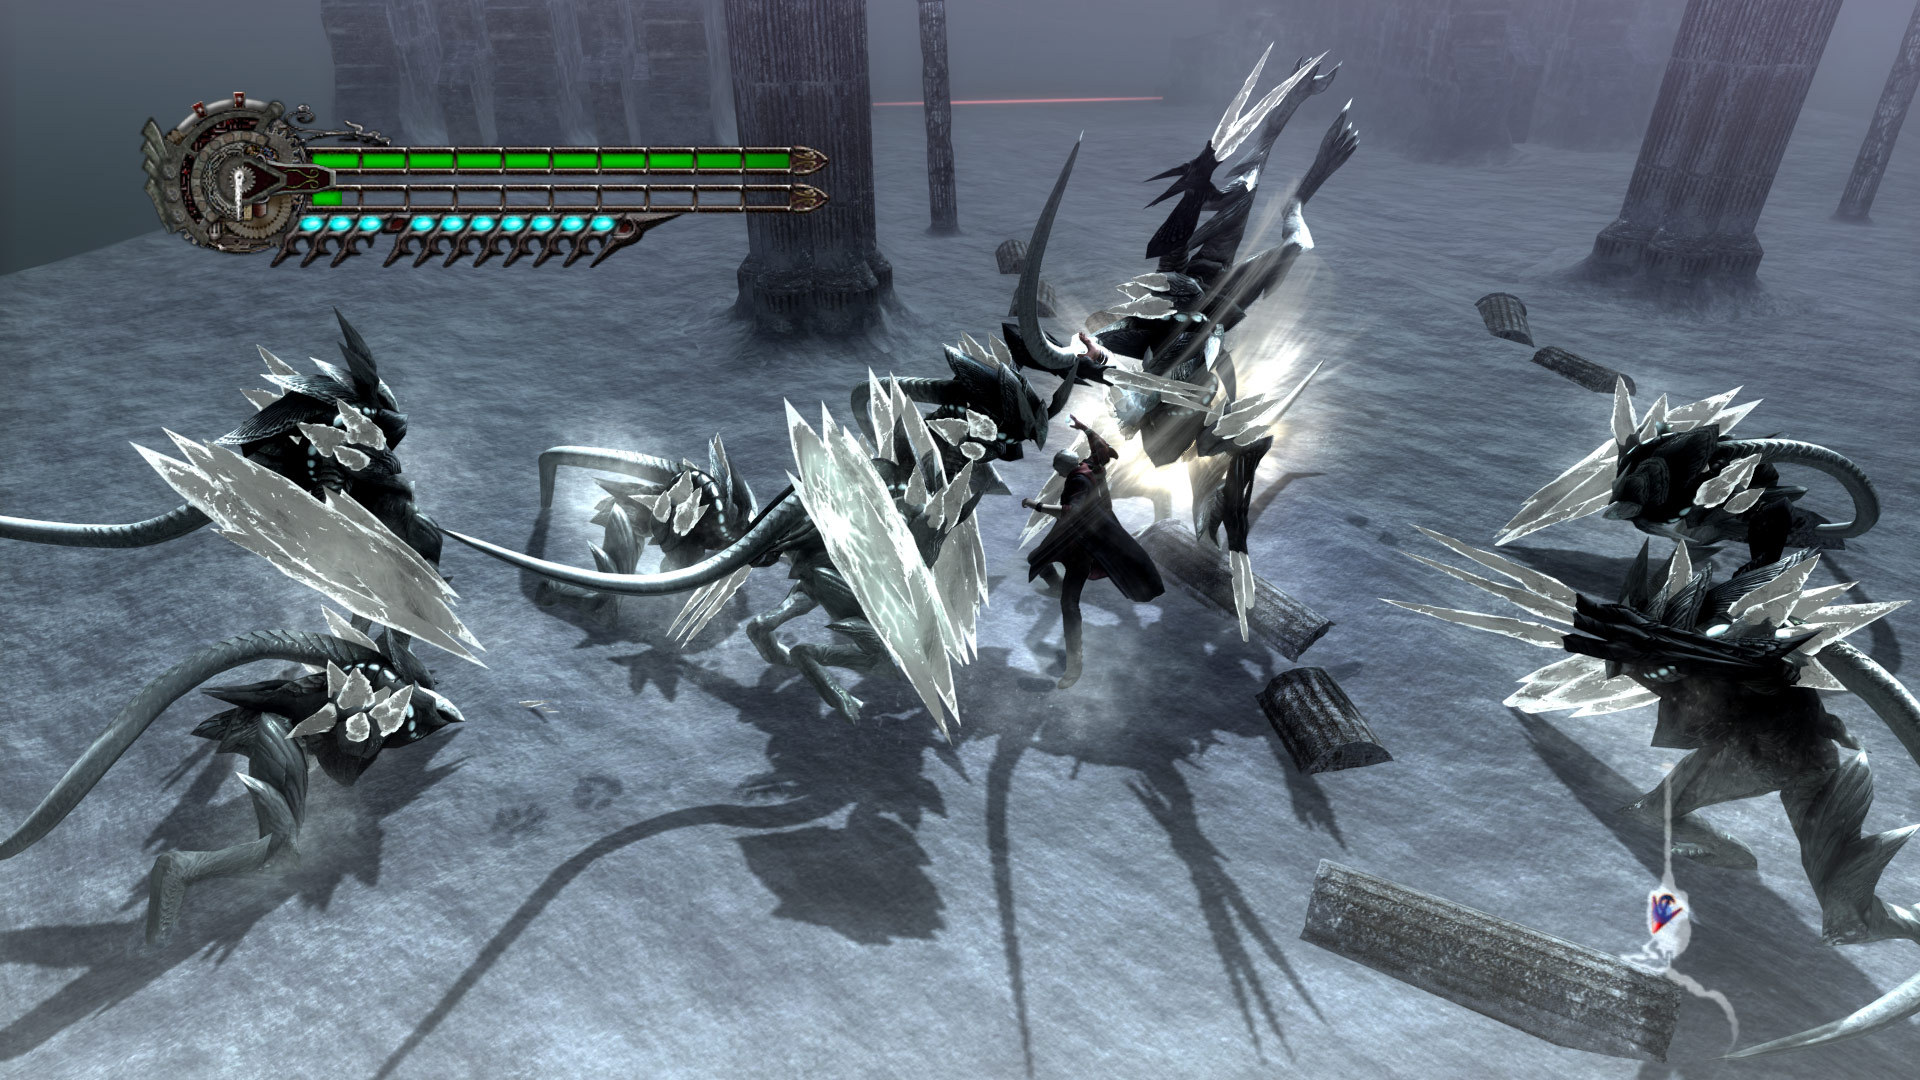 Find the best laptop for DMC4